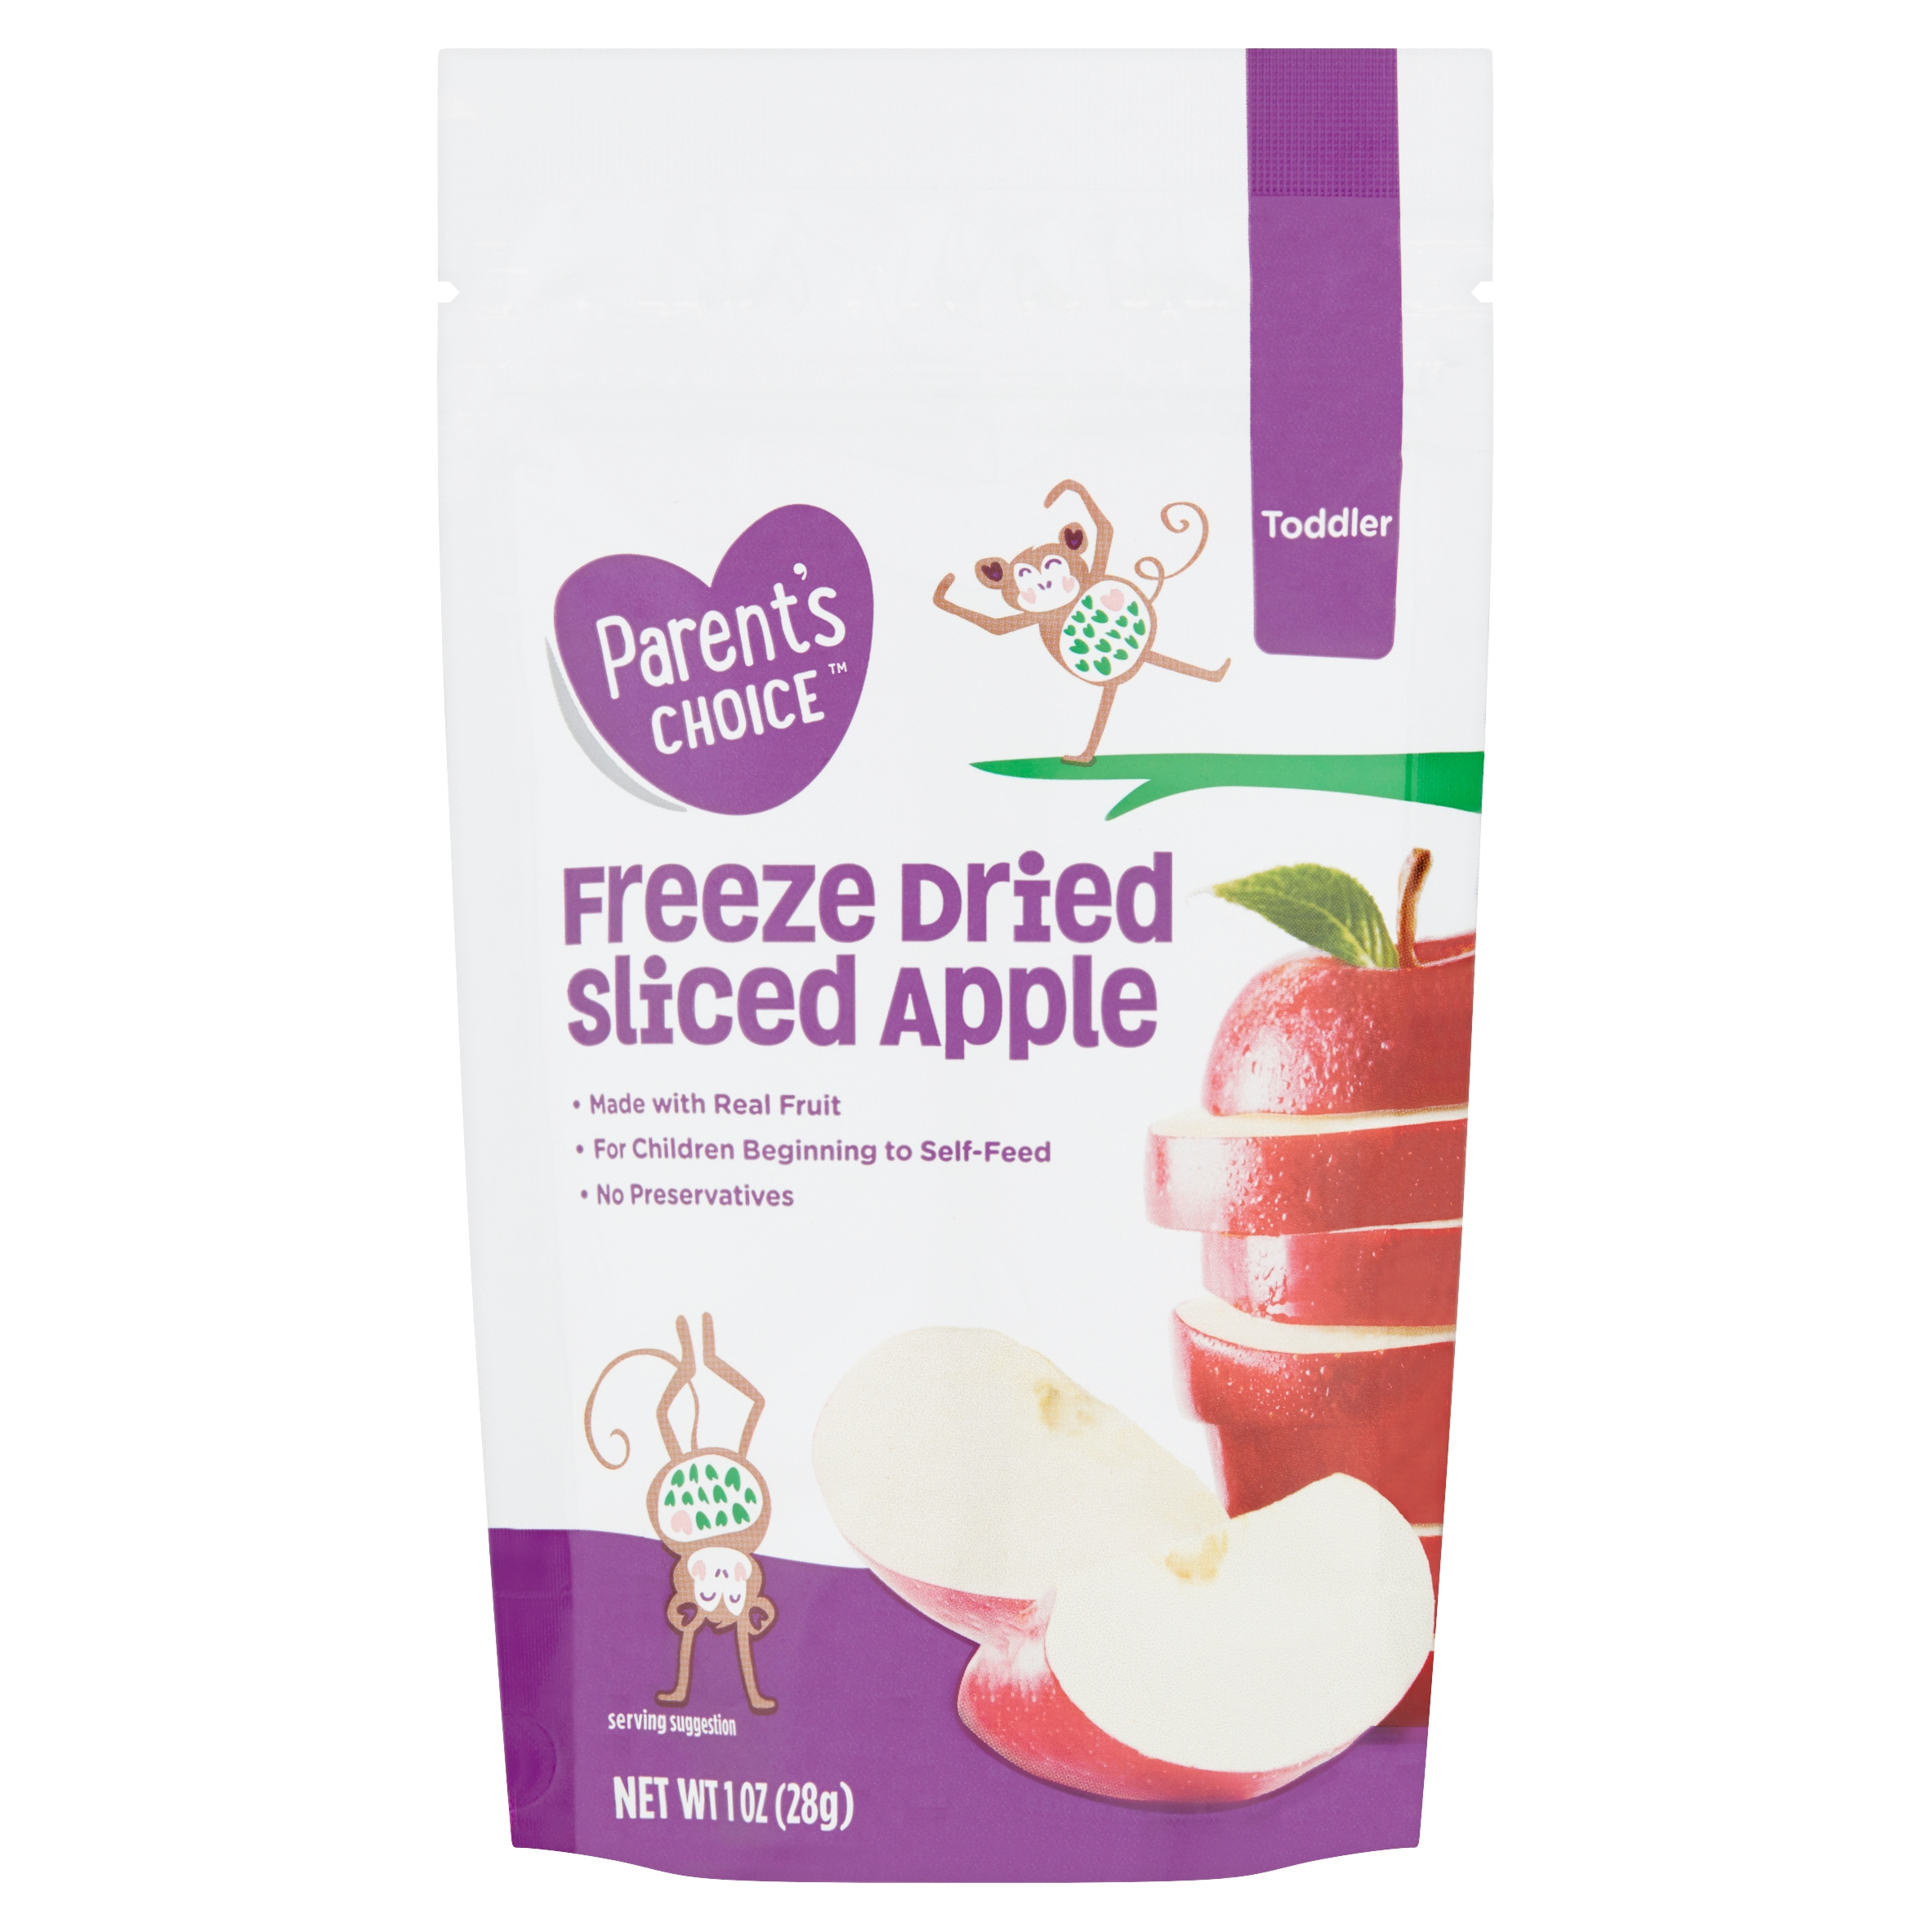 Parent's Choice Freeze Dried Sliced Apple, Toddler, 1 oz